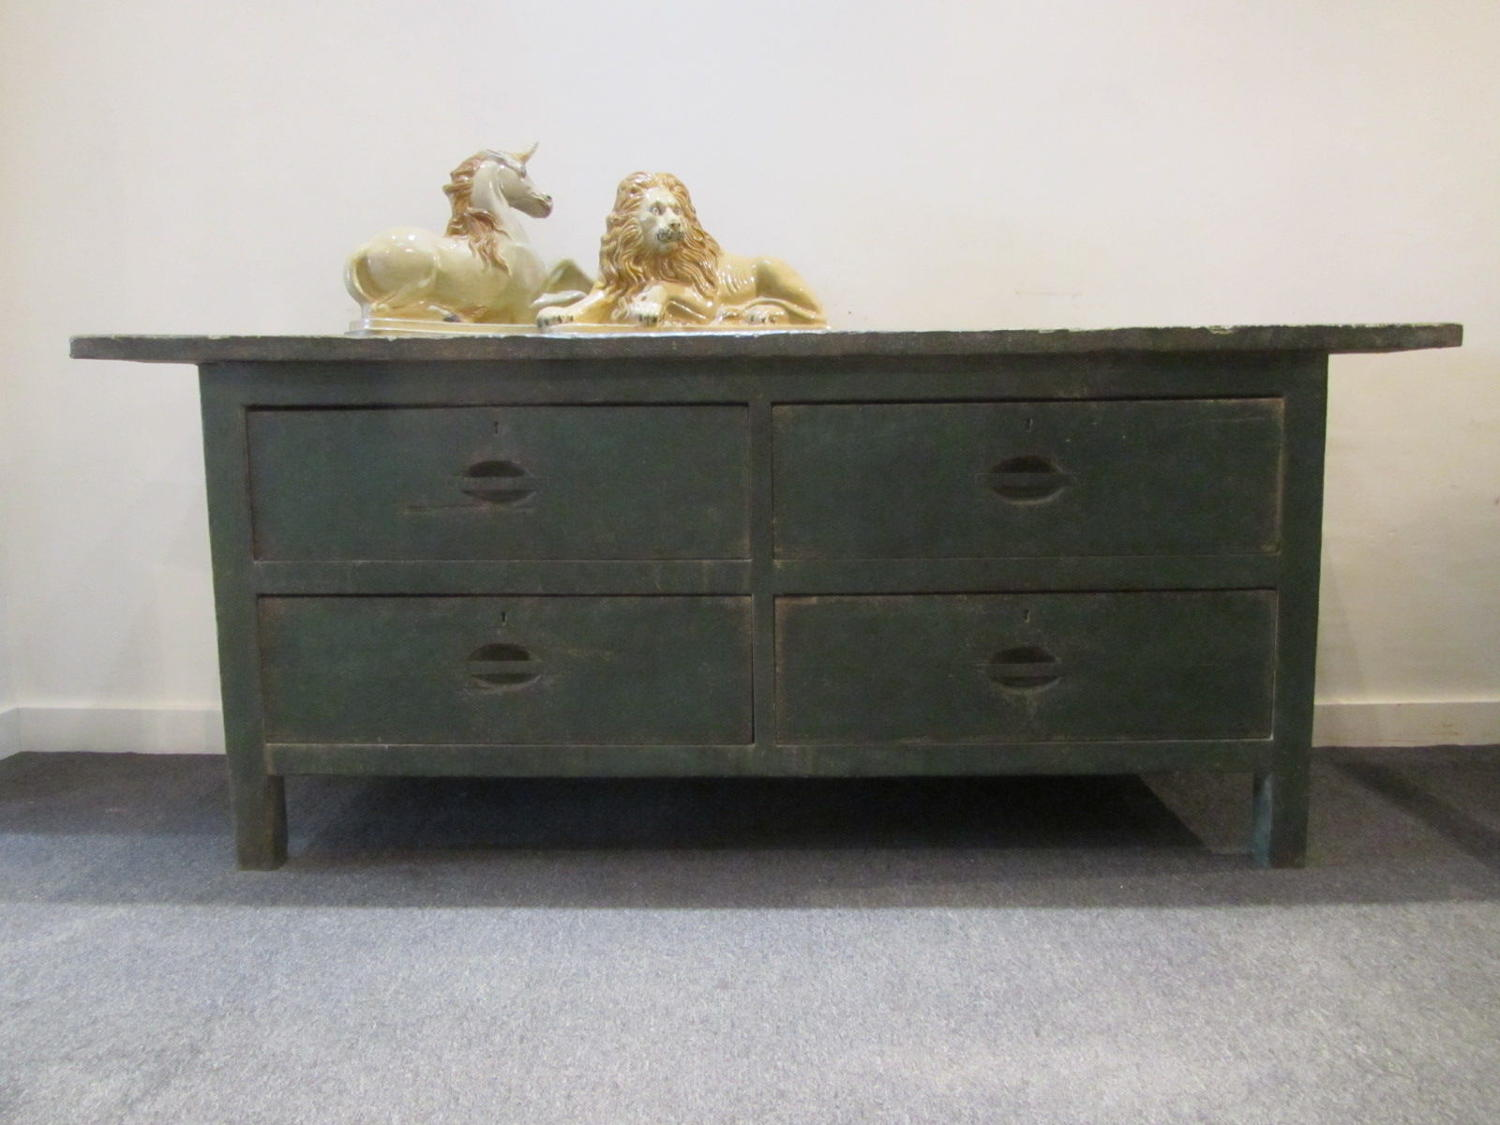 A large blacksmiths forge four drawer chest